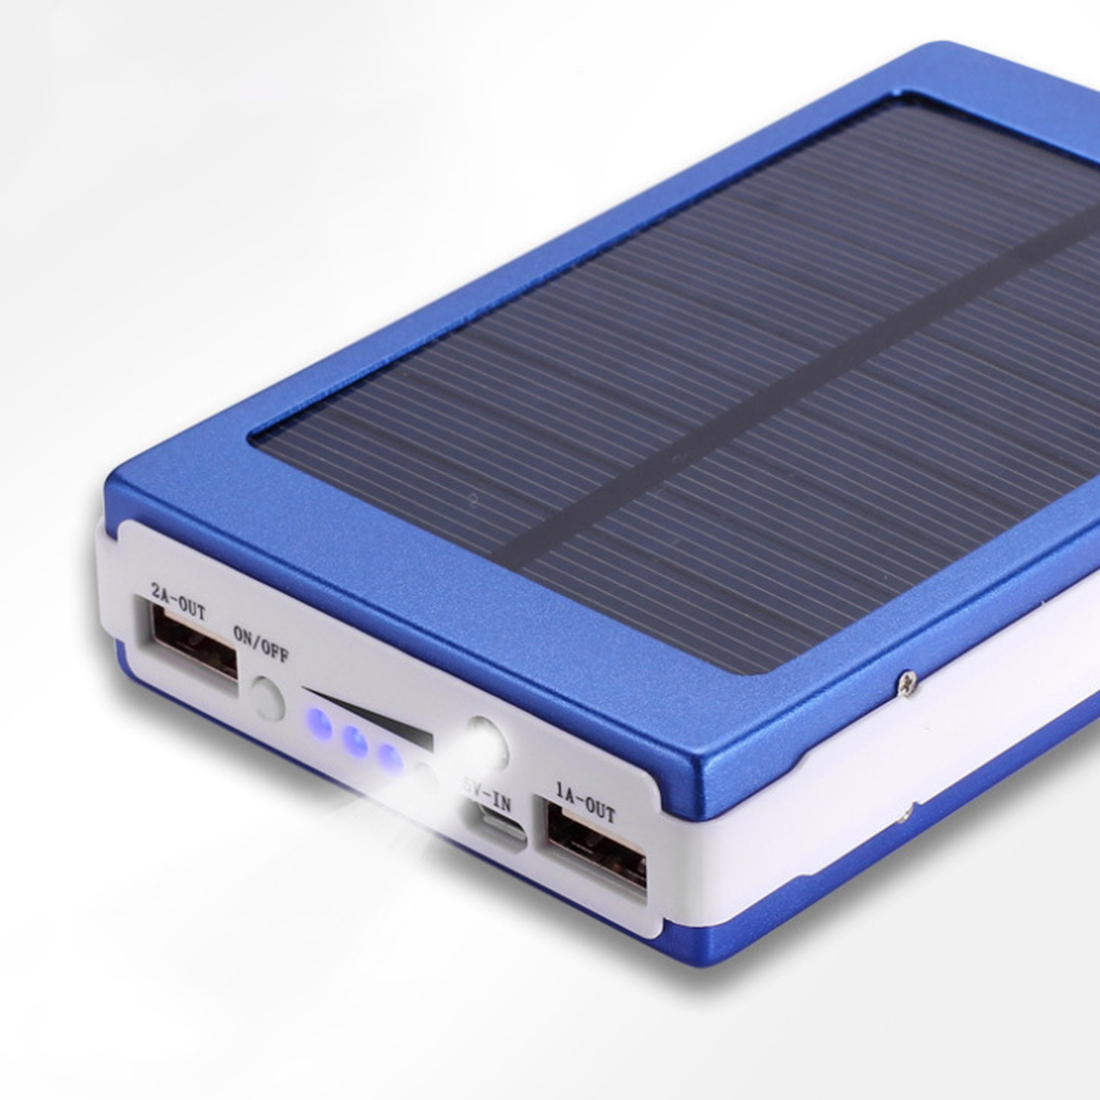 30000mAh High Capacity Solar Battery Portable Charger Dual Output USB External Battery Long Lasting For Mobile Phone Solar